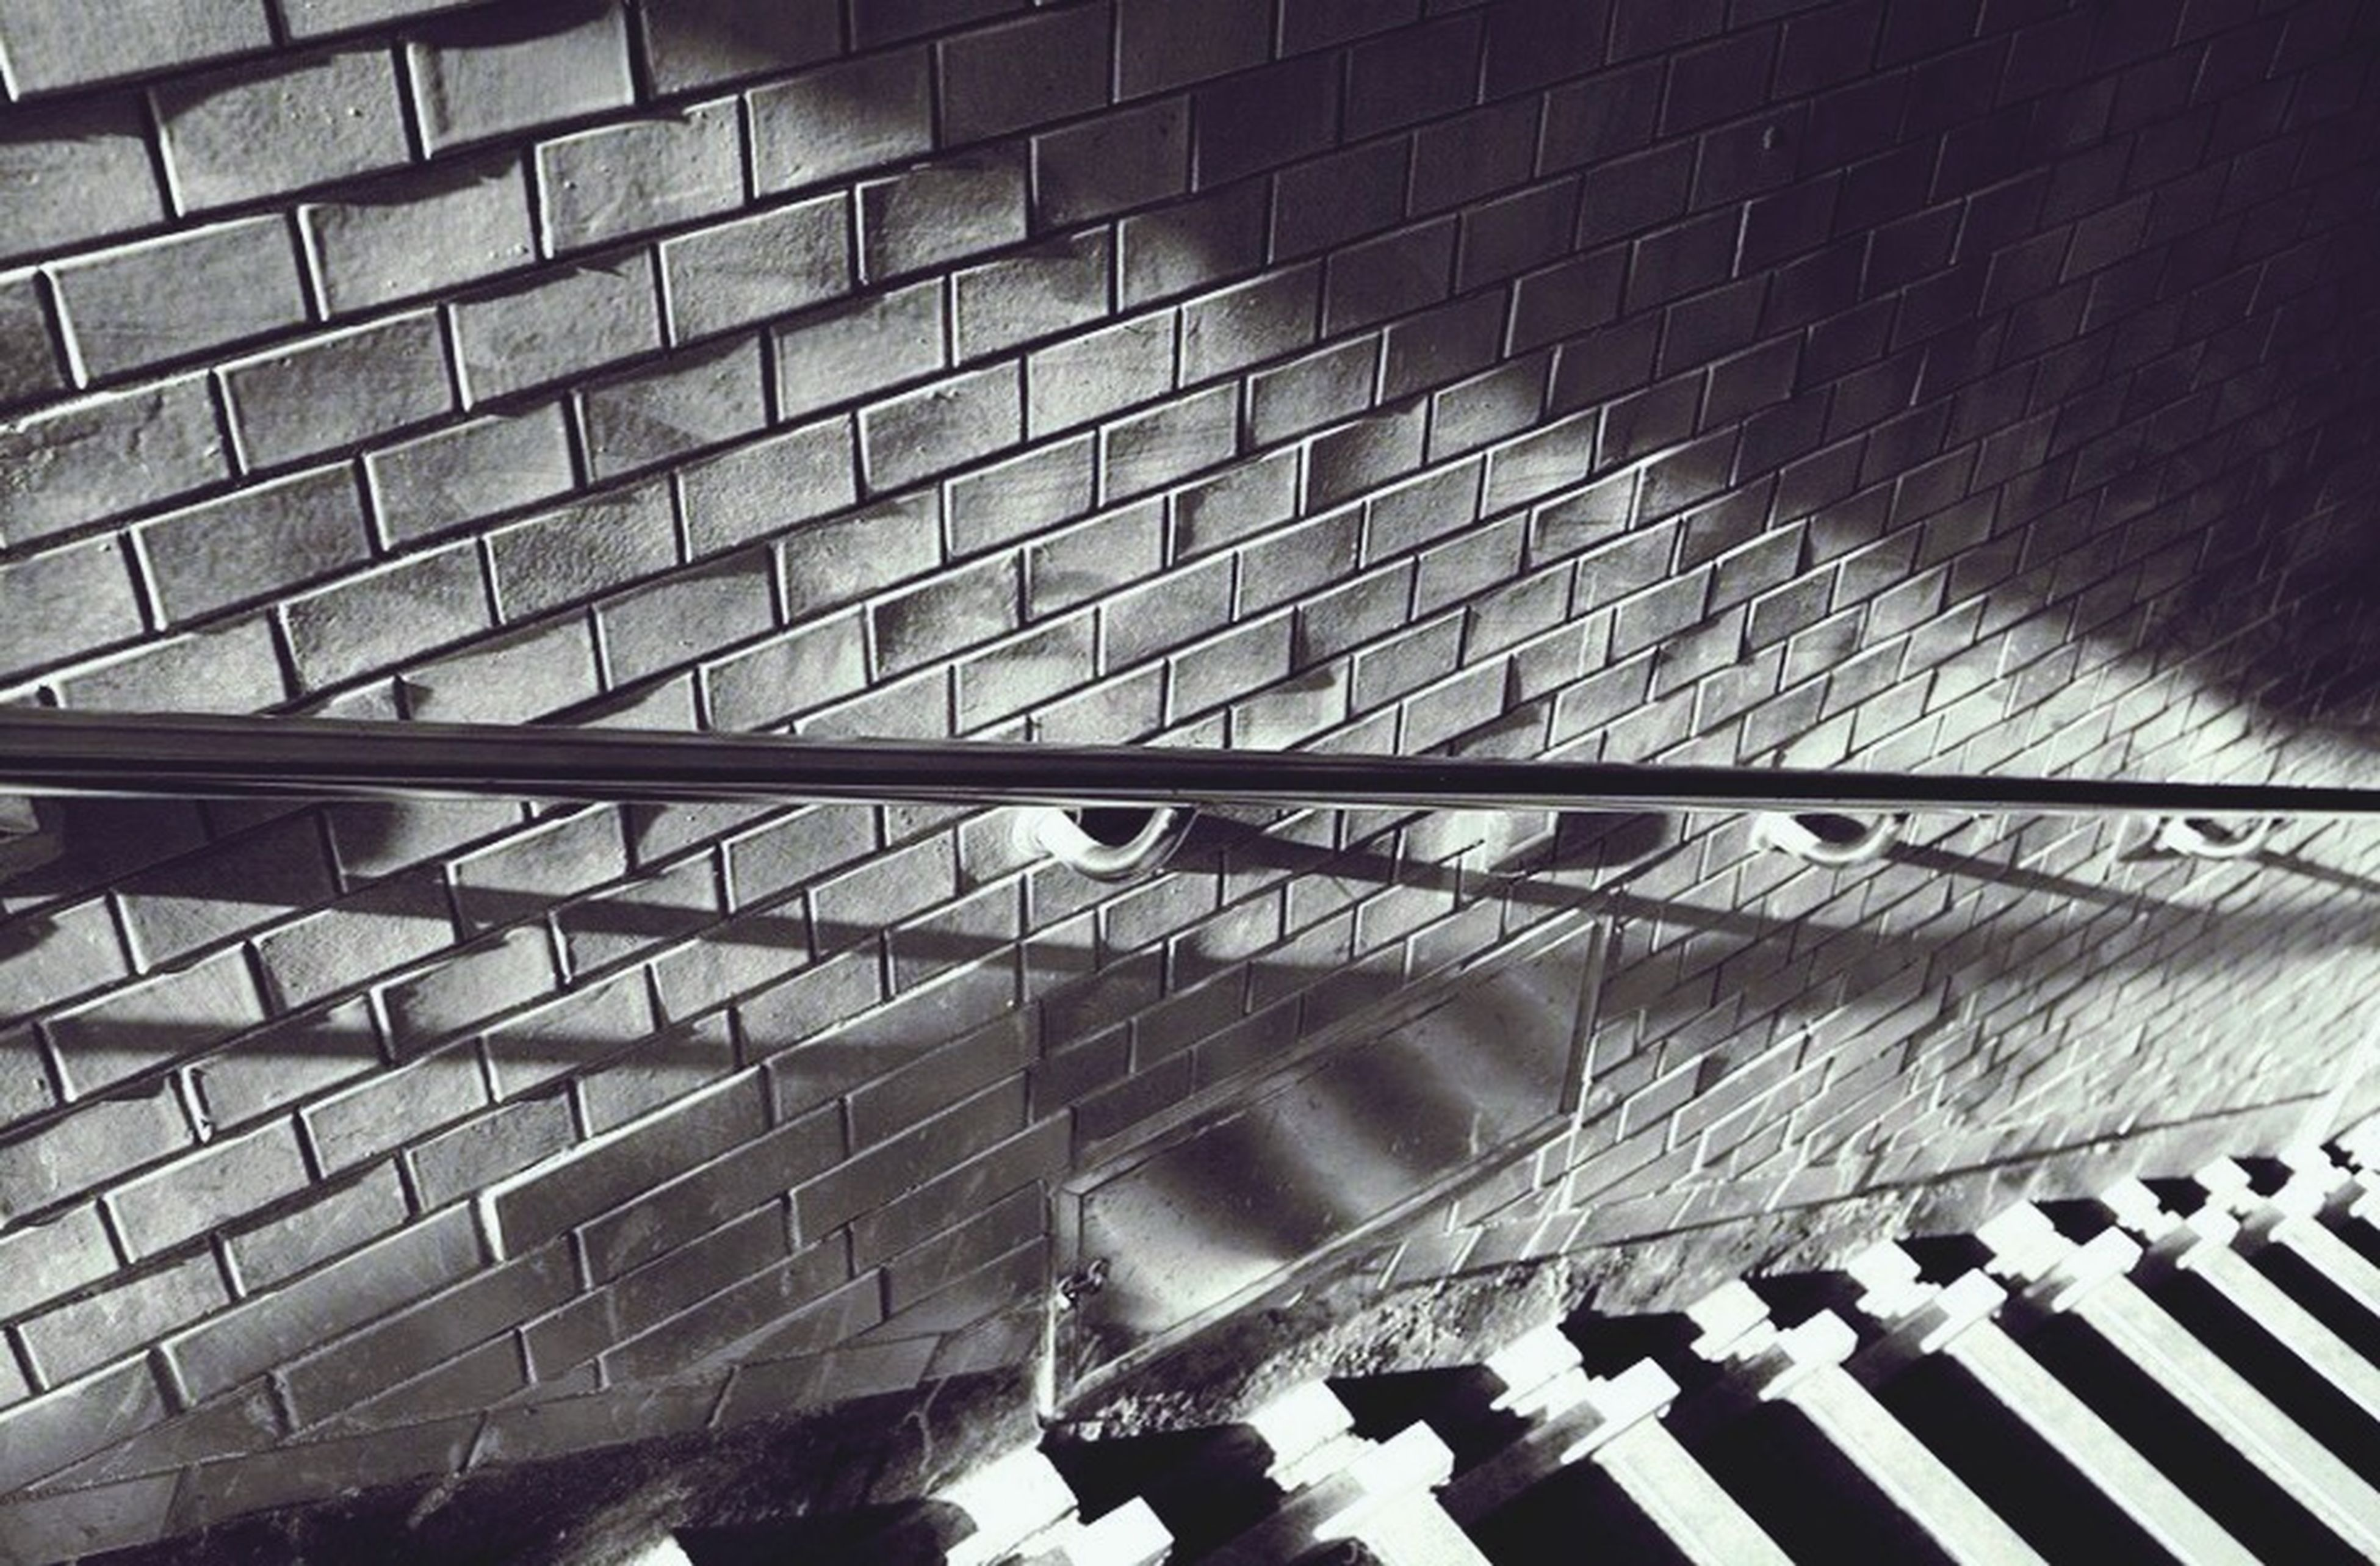 architecture, built structure, pattern, indoors, modern, shadow, reflection, high angle view, building exterior, building, glass - material, ceiling, sunlight, day, repetition, low angle view, design, railing, geometric shape, architectural feature